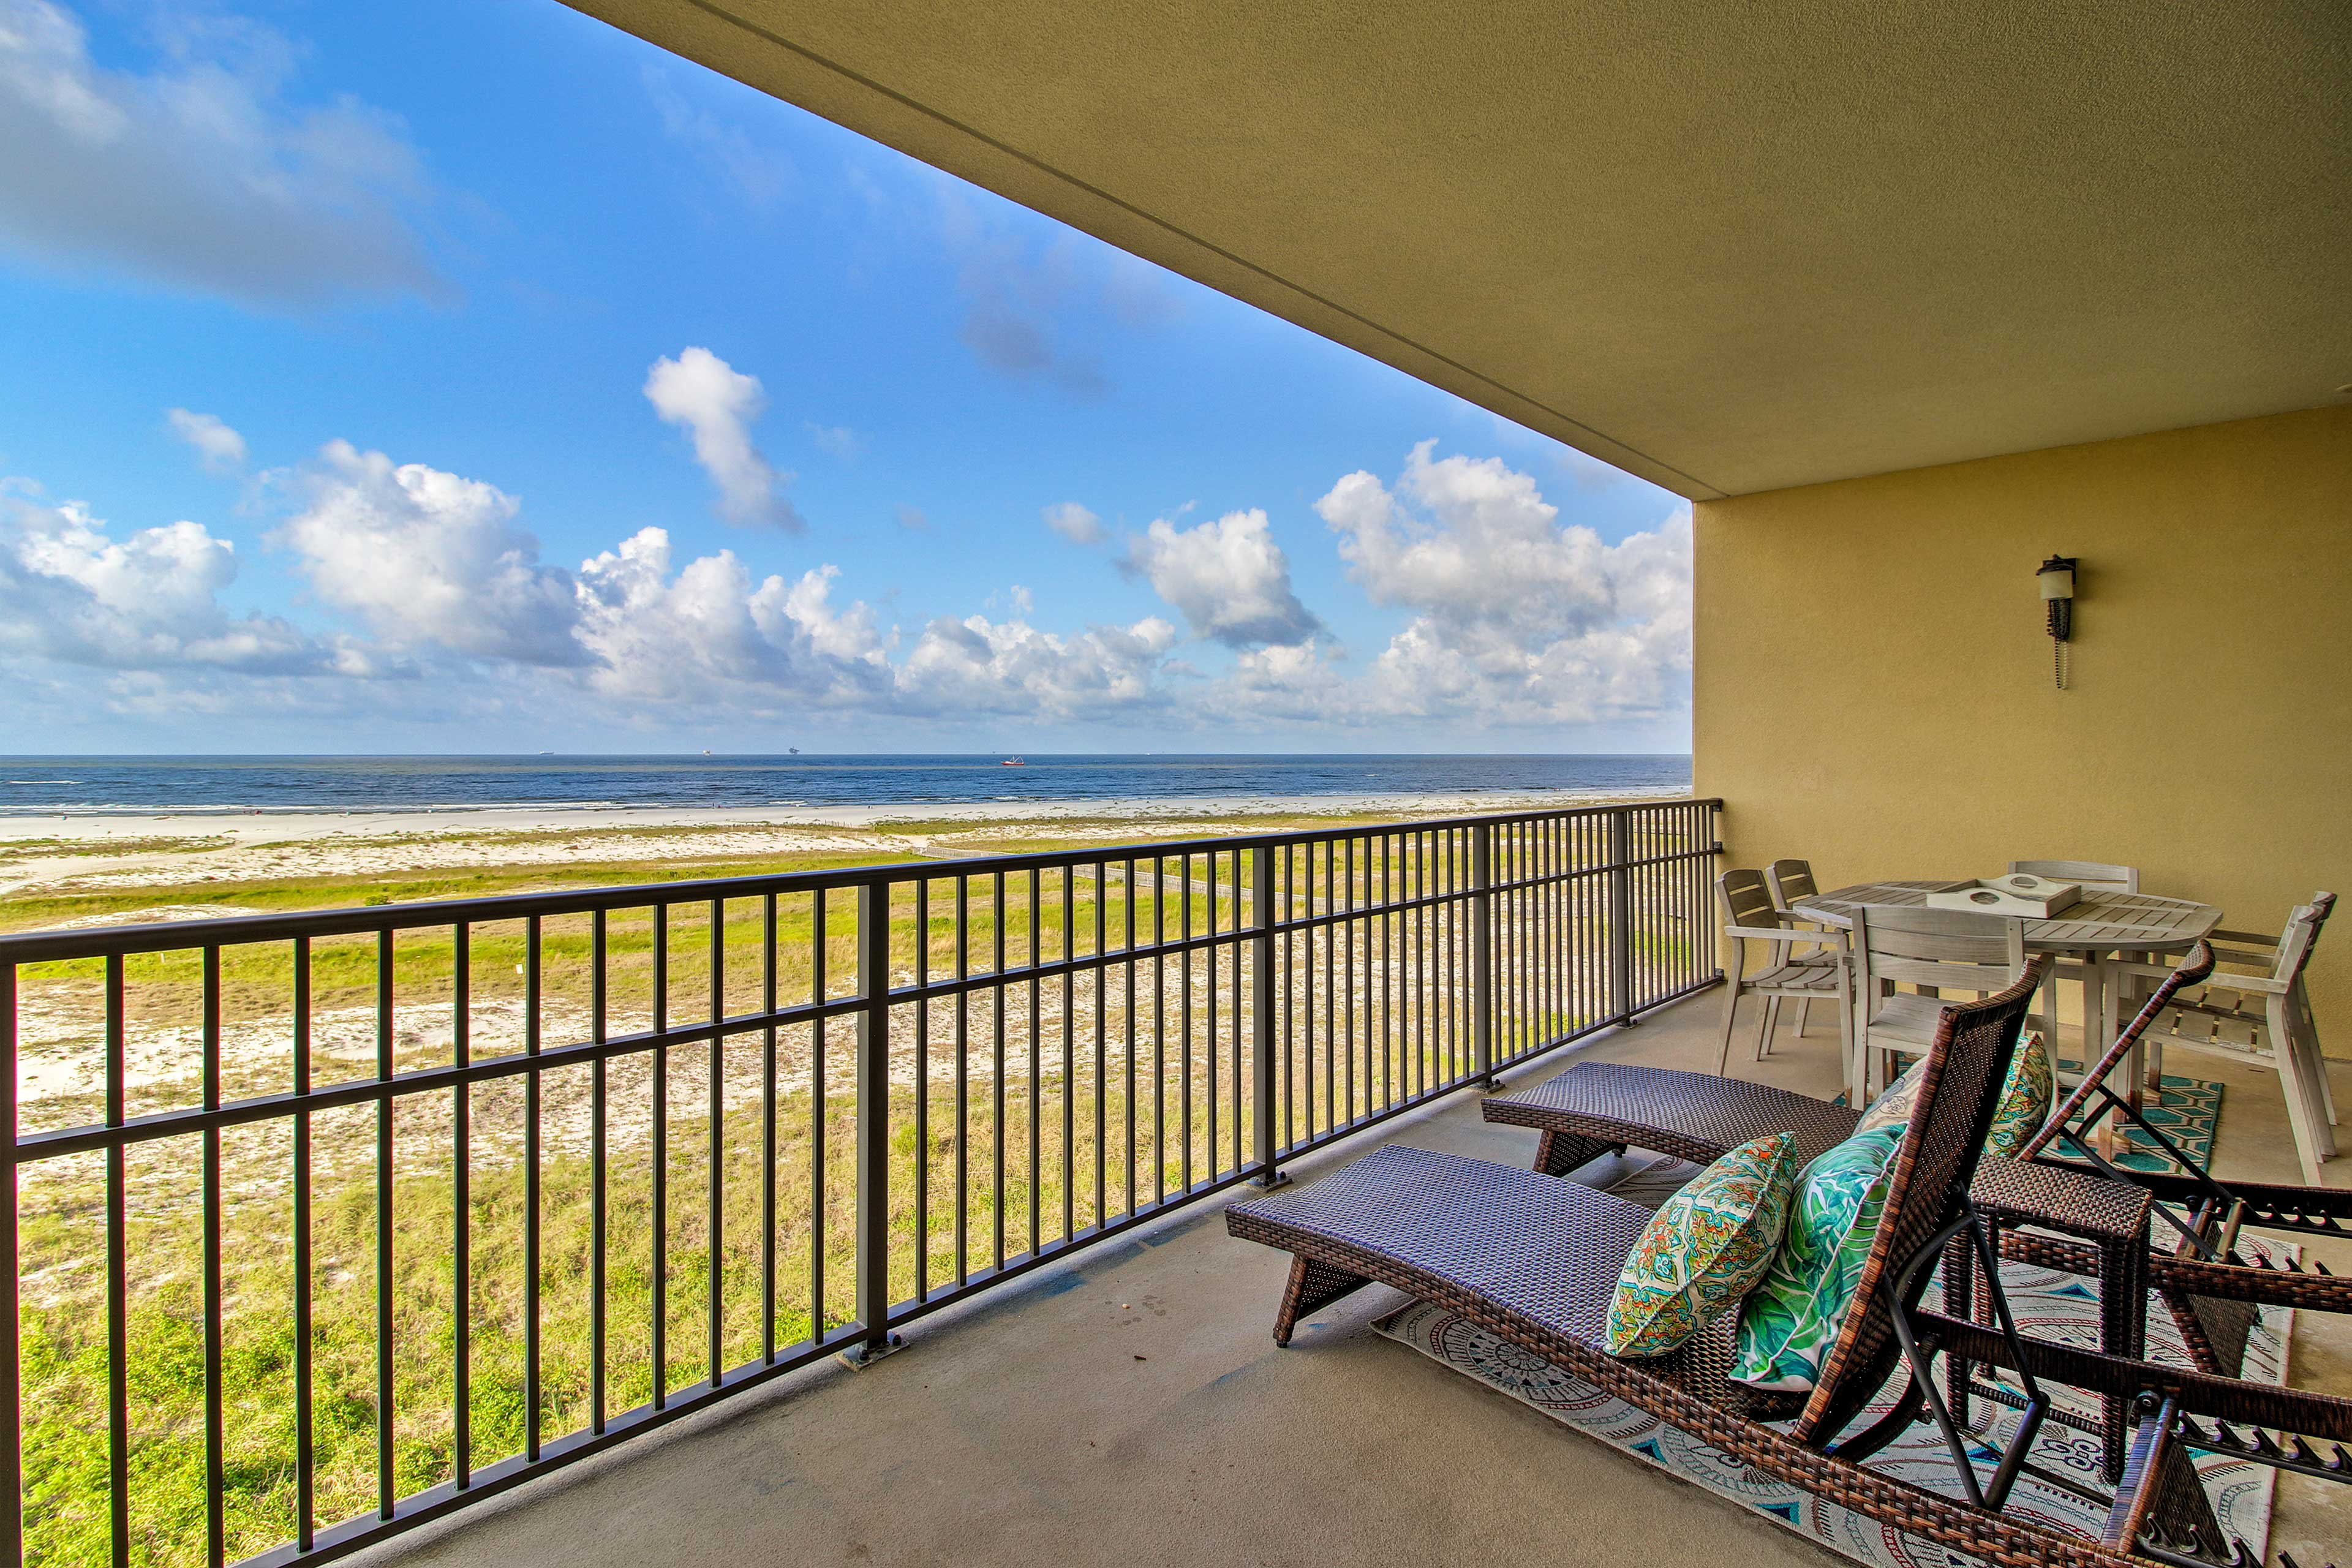 Look forward to lounging on the private balcony and taking in the gulf views!